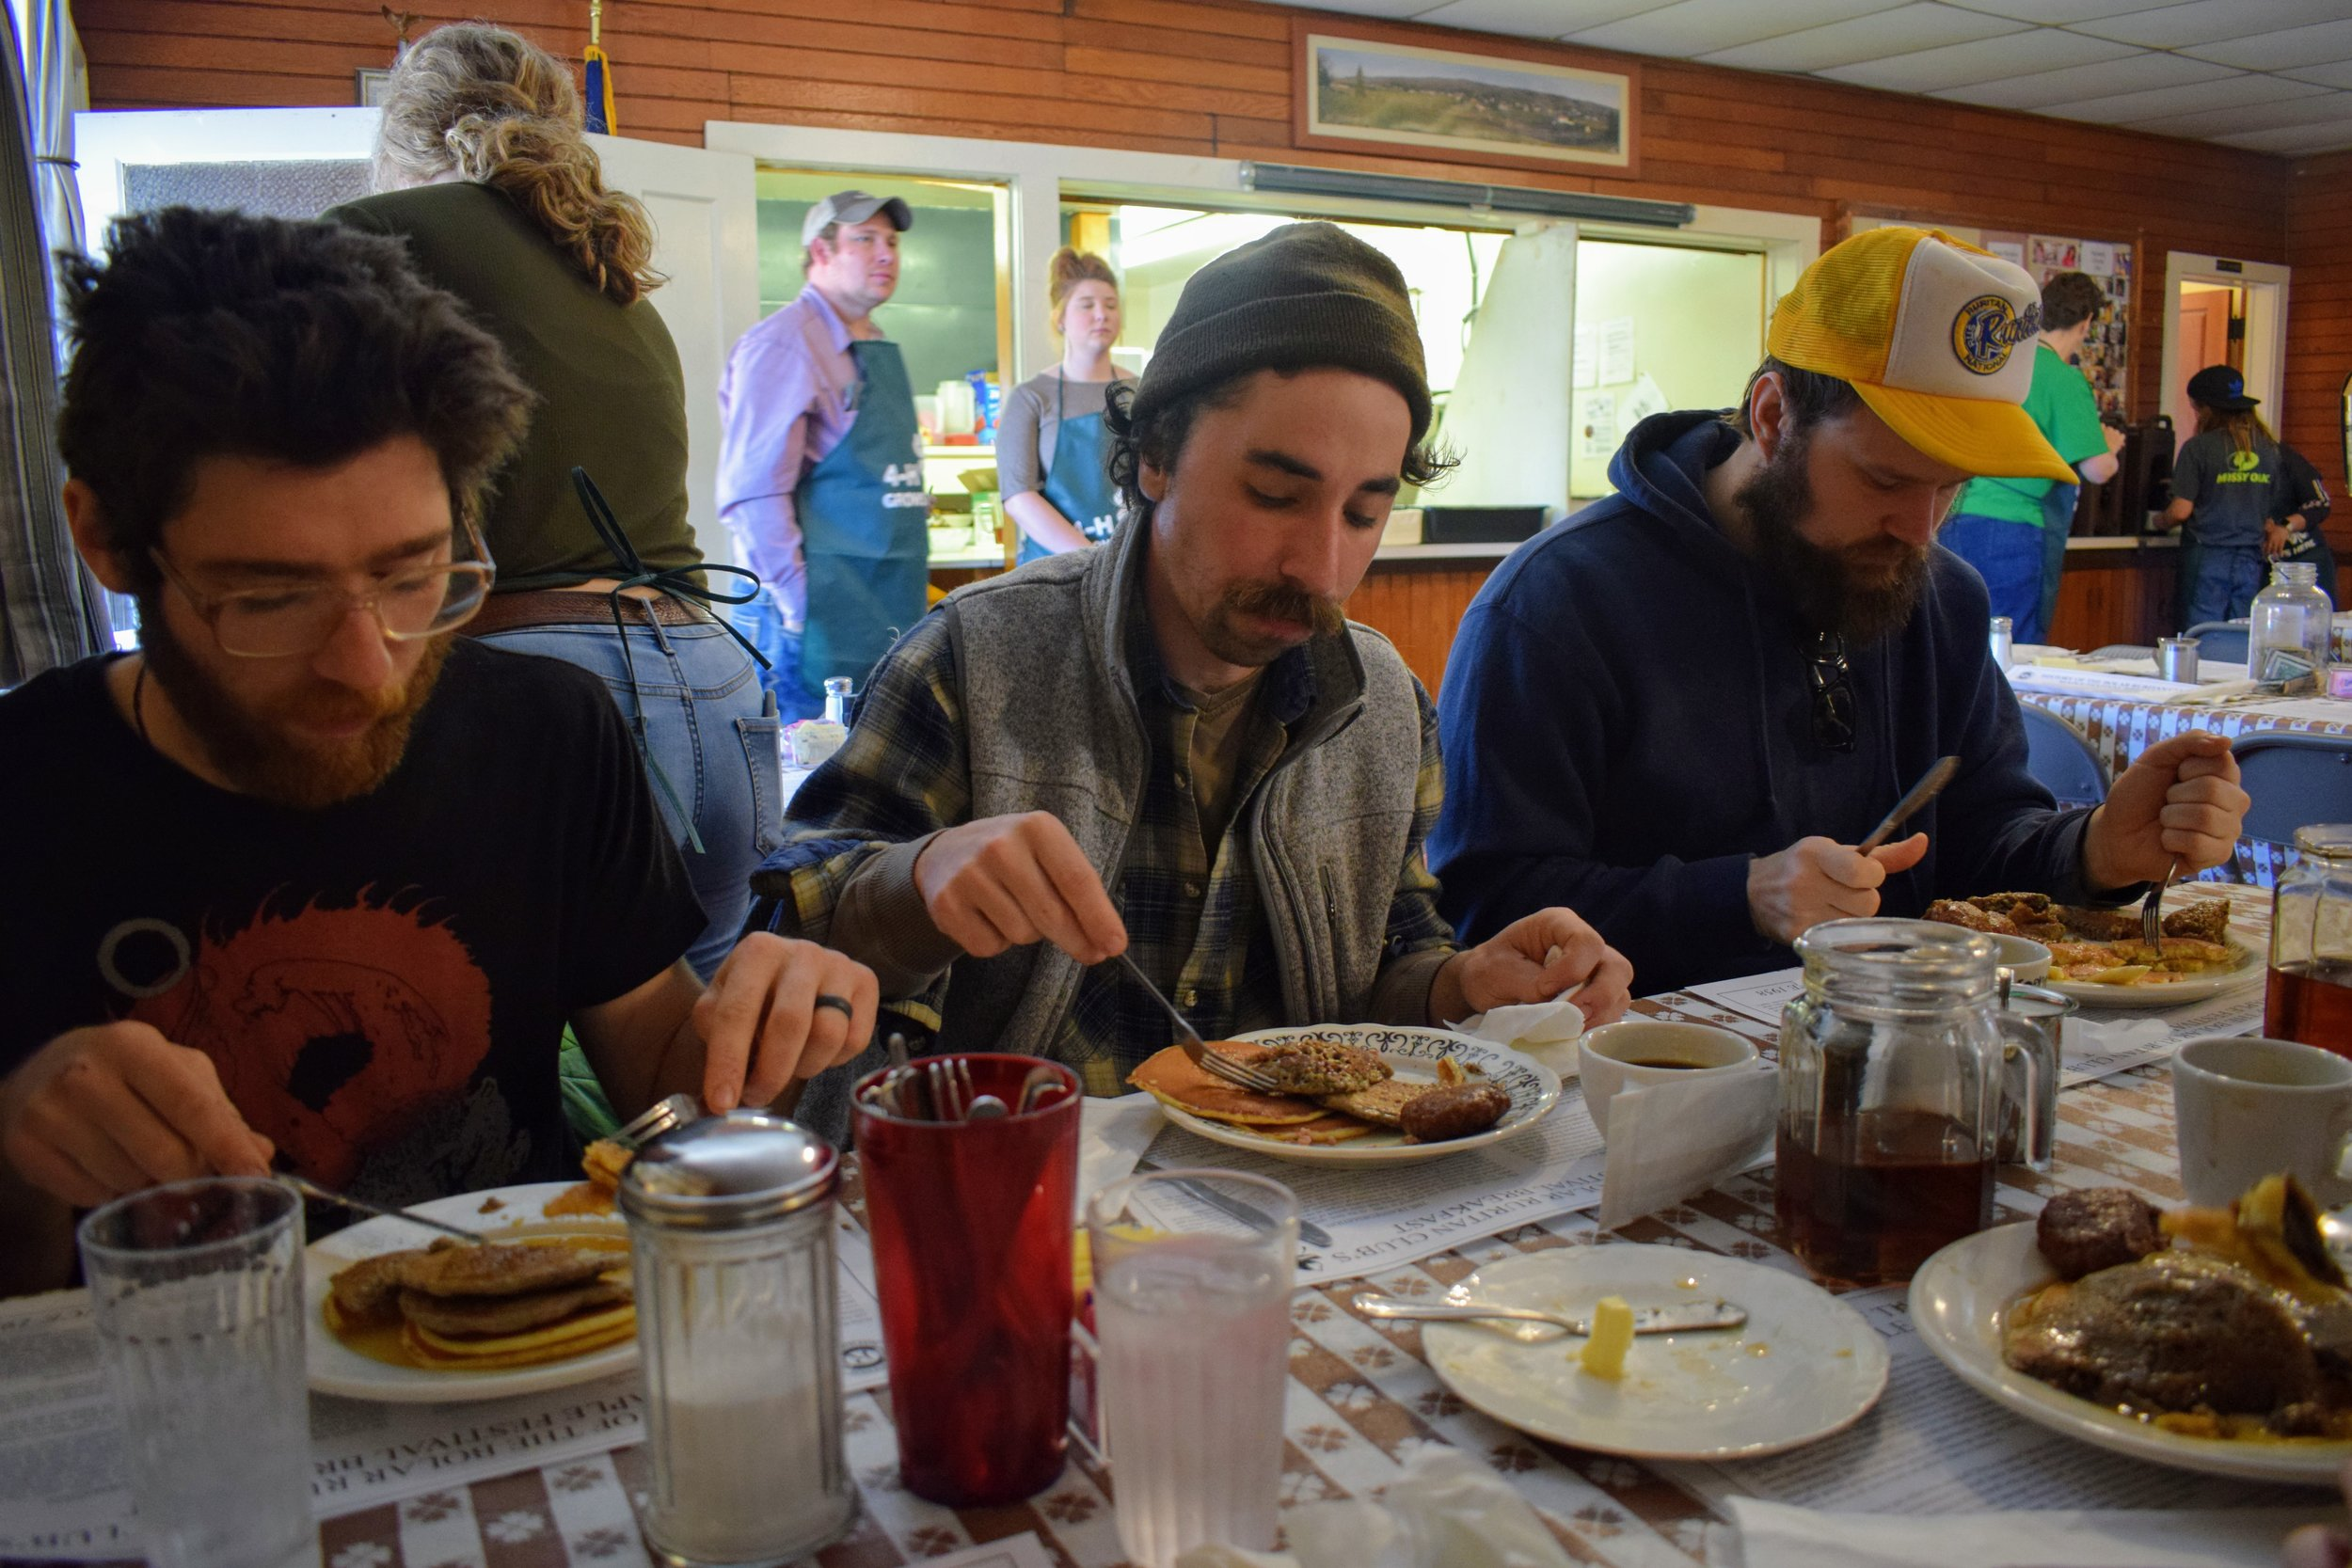 Emmett, Dylan, and Sam digging in at Bolar Ruritan.